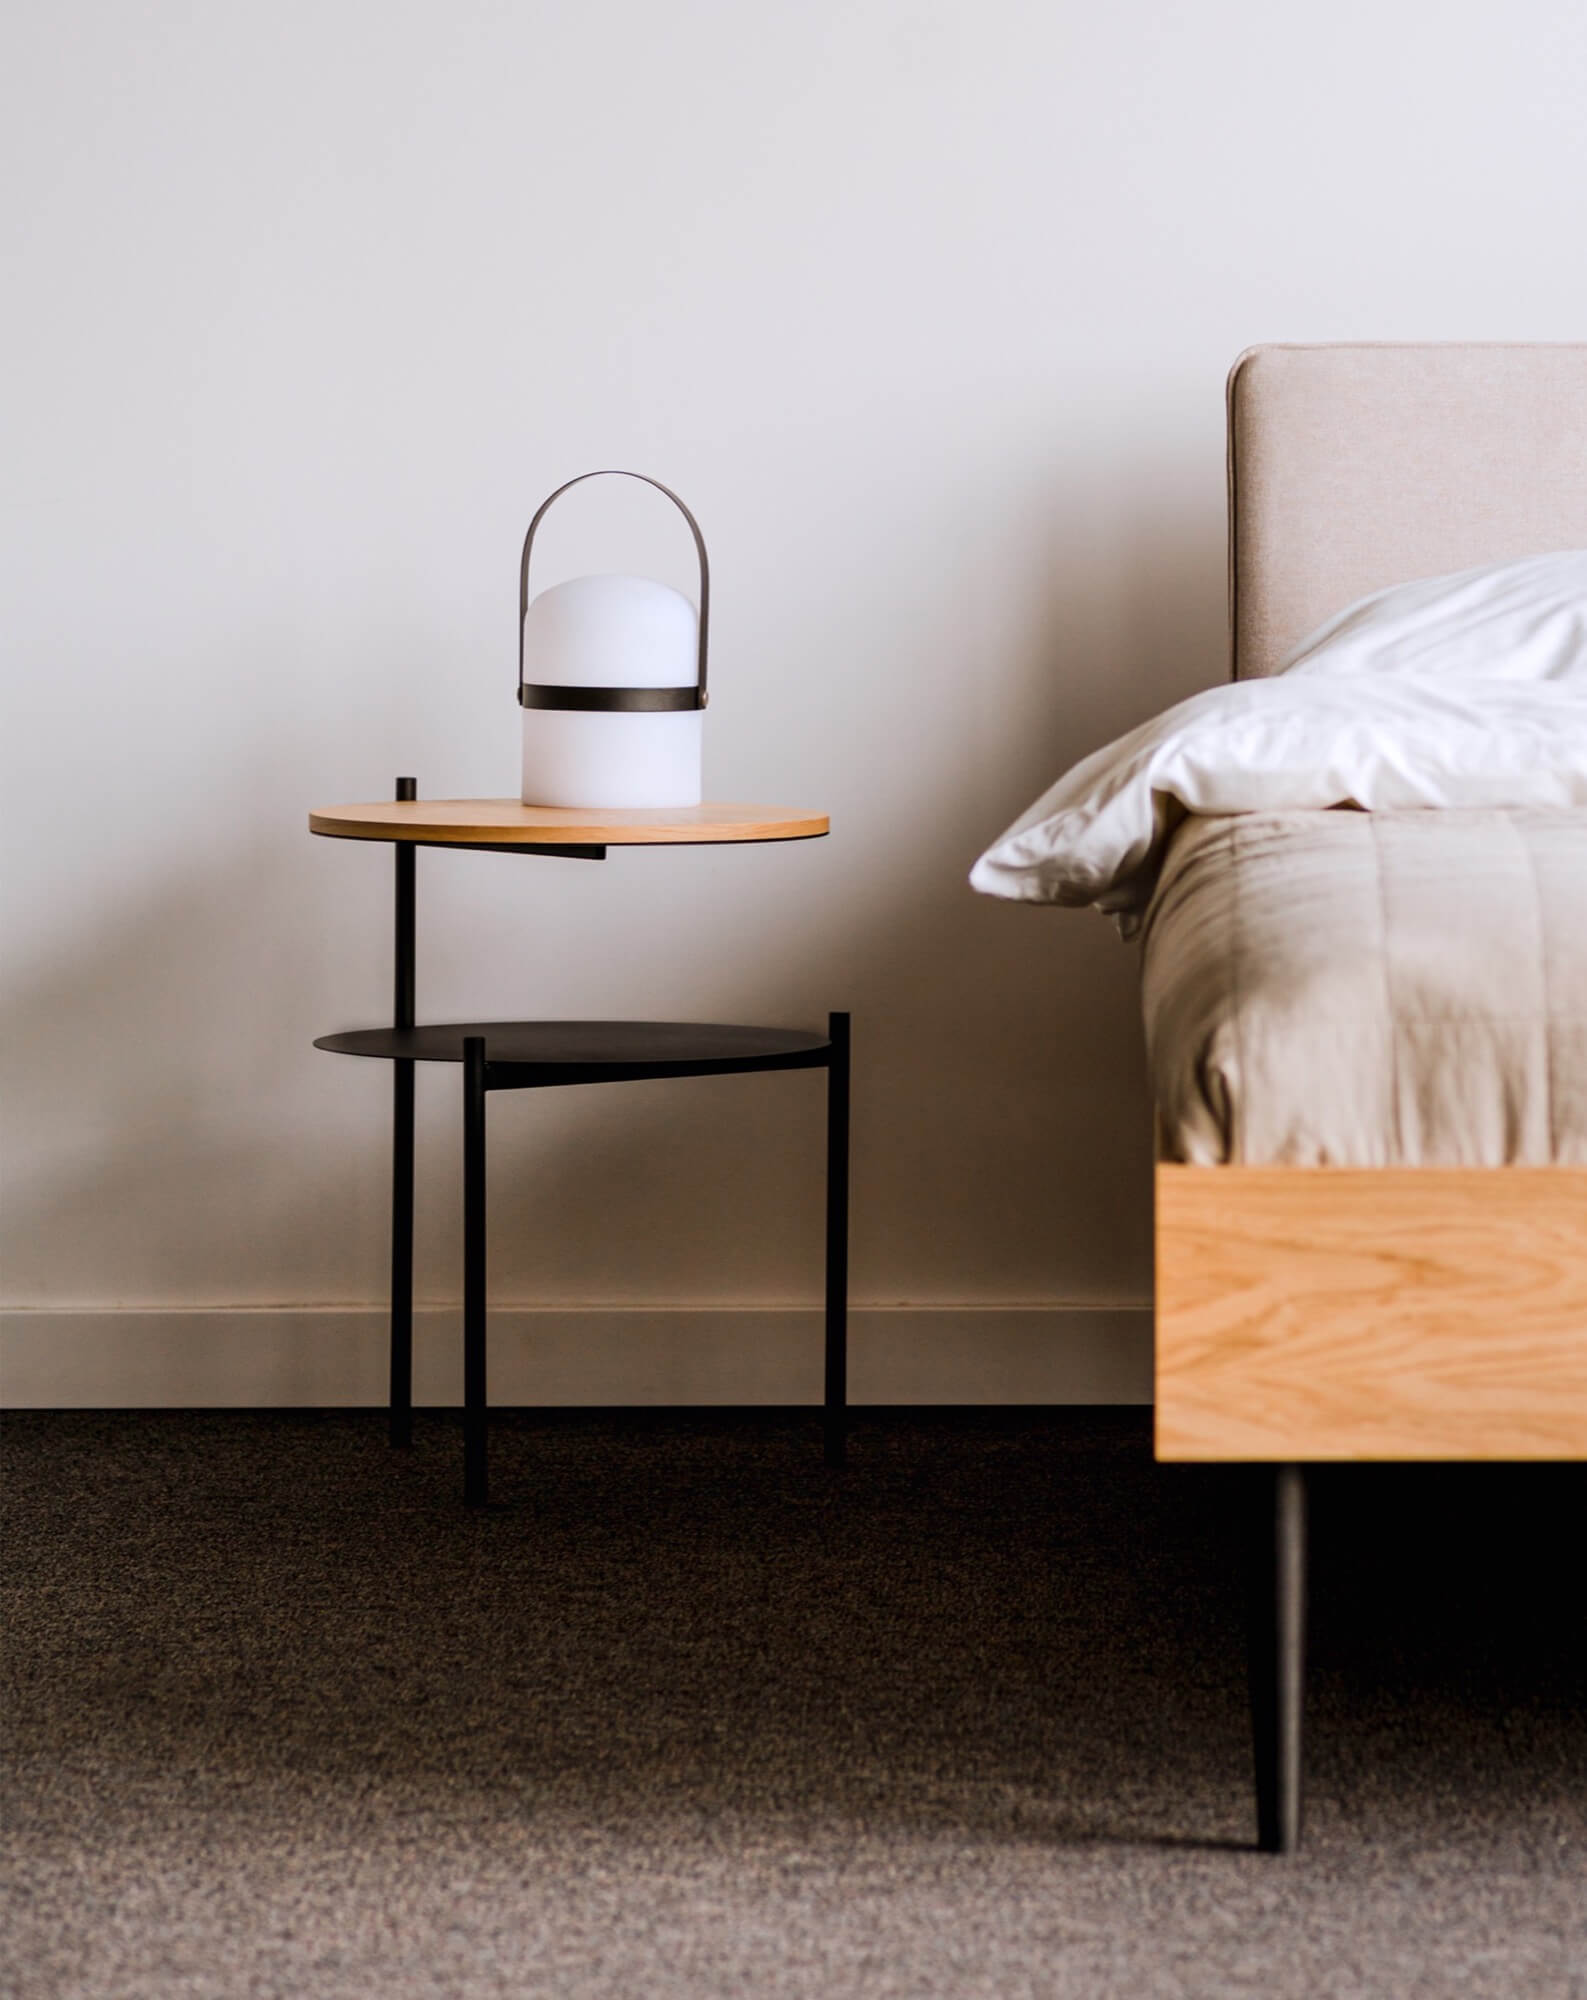 Furnitures for your hotel - noo.ma